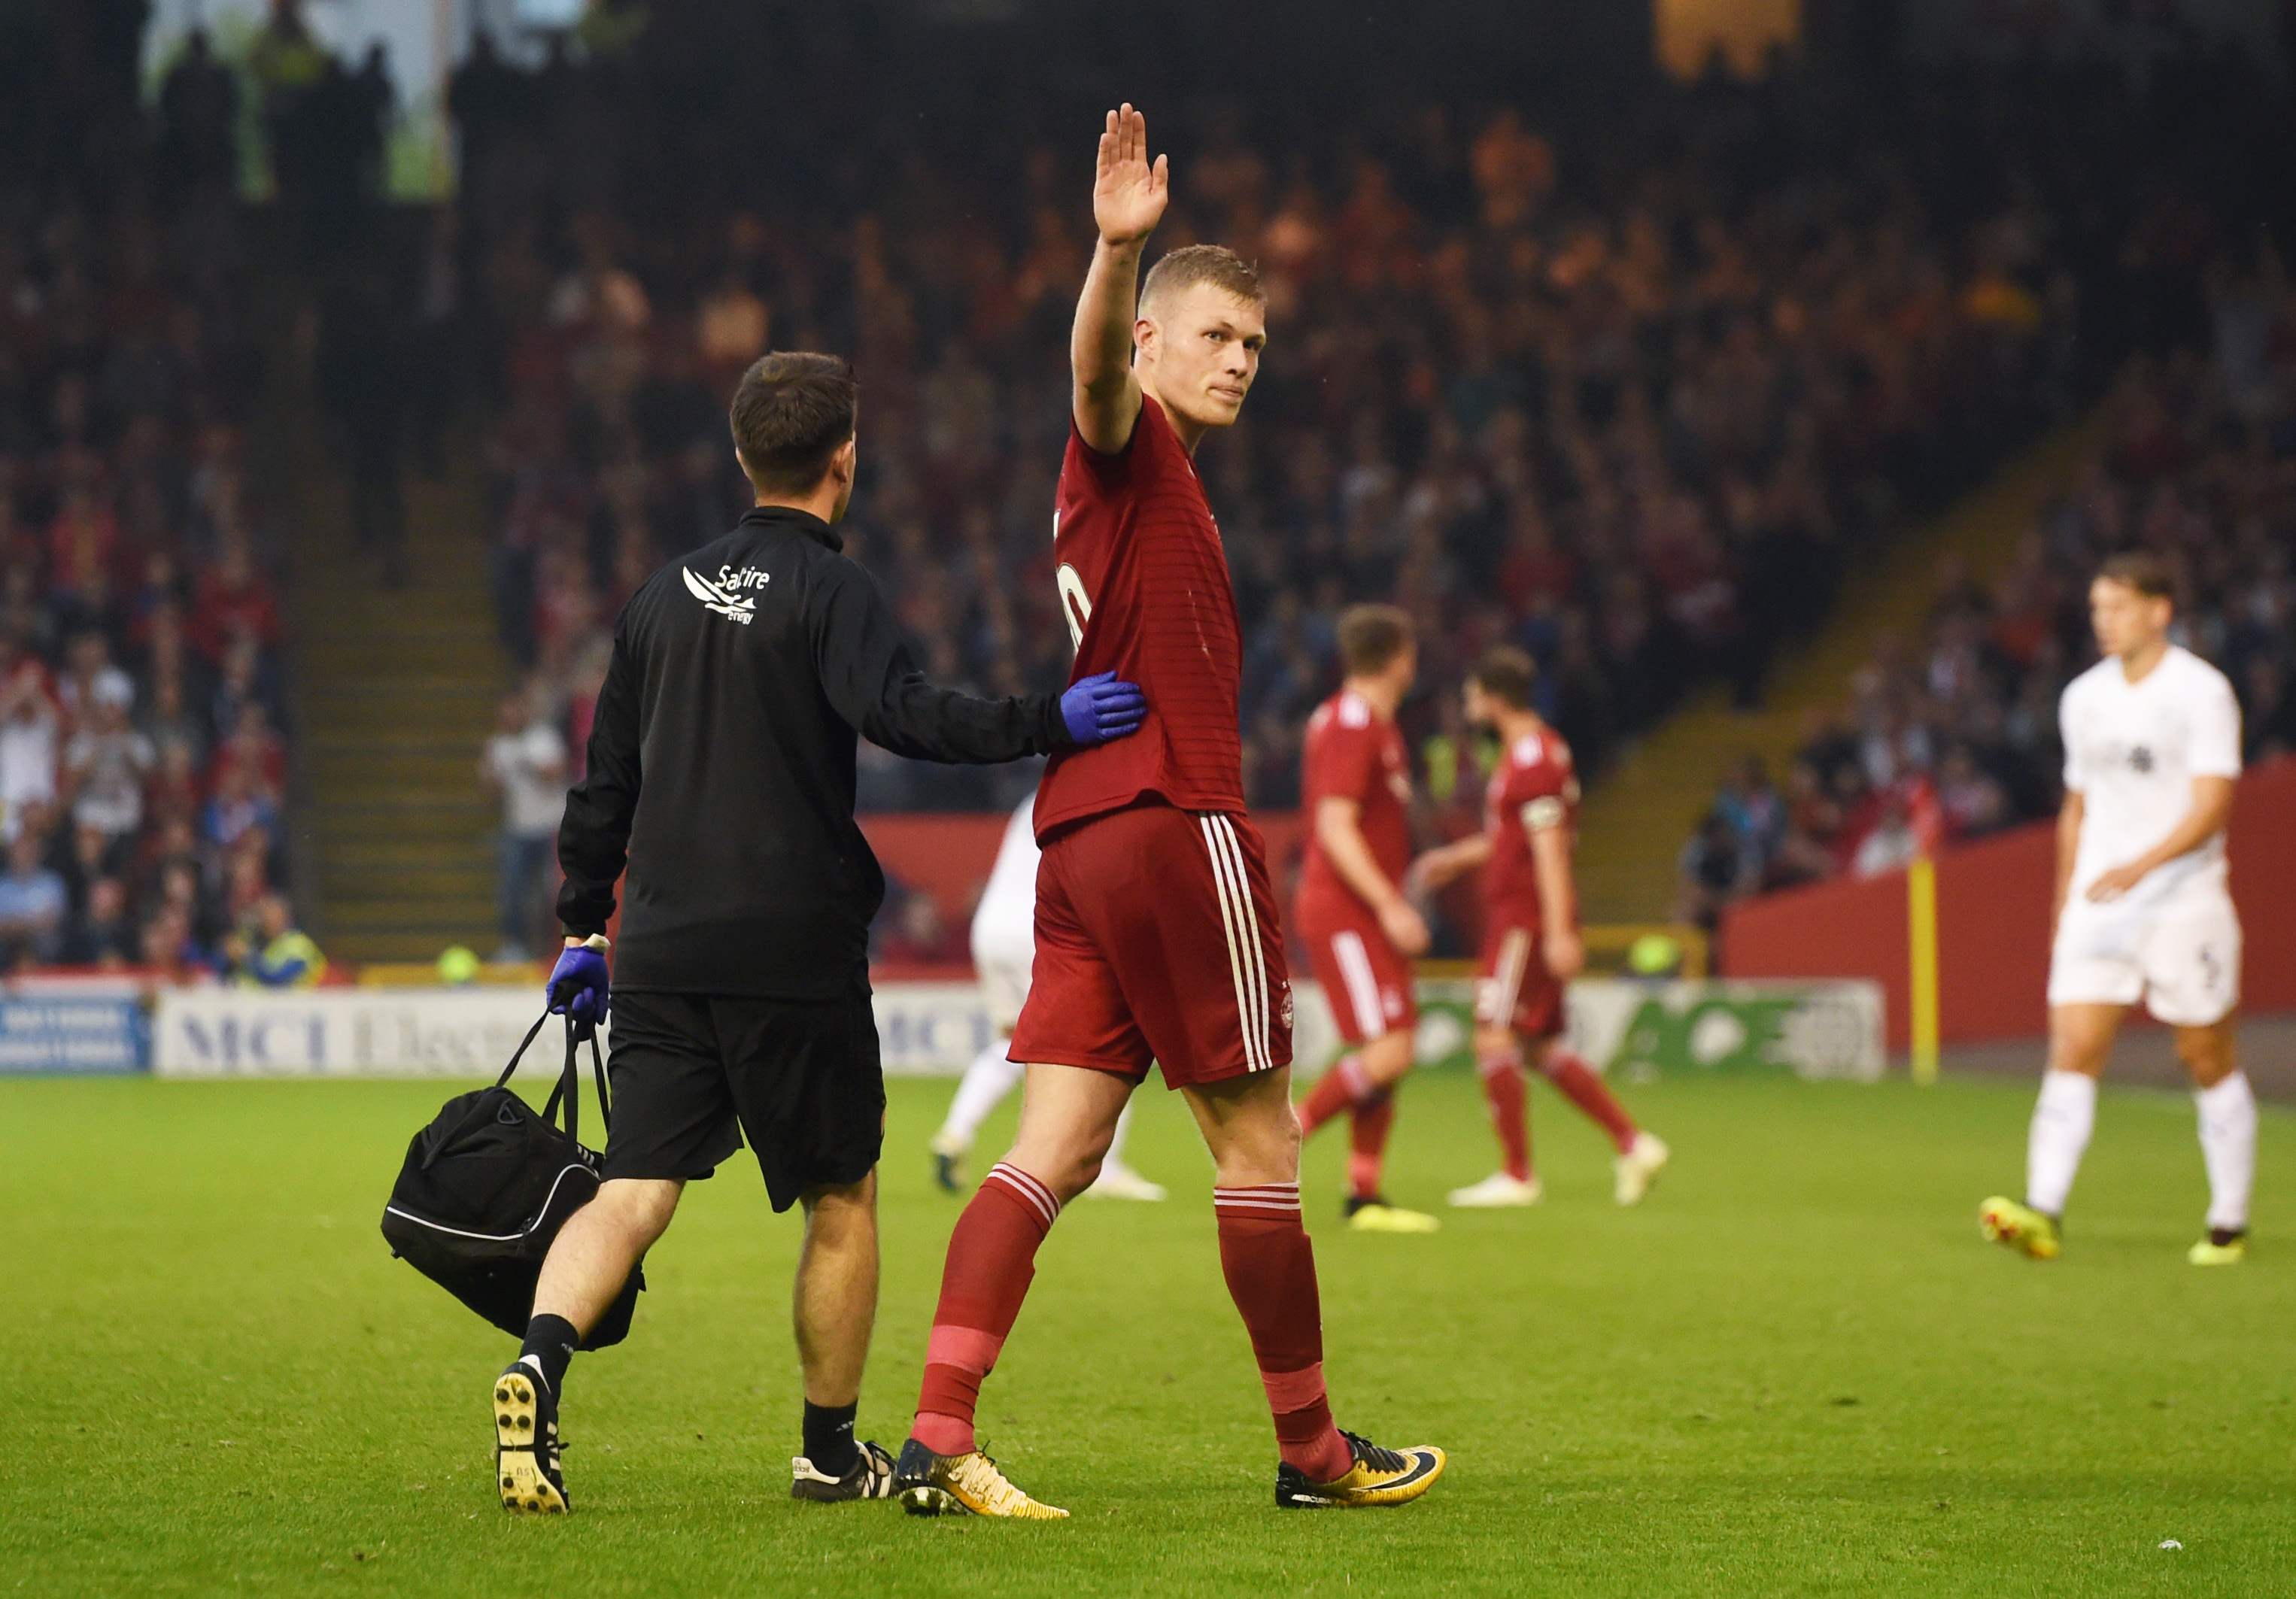 Sam Cosgrove salutes the Aberdeen fans during his impressive performance in the first leg against Burnley.